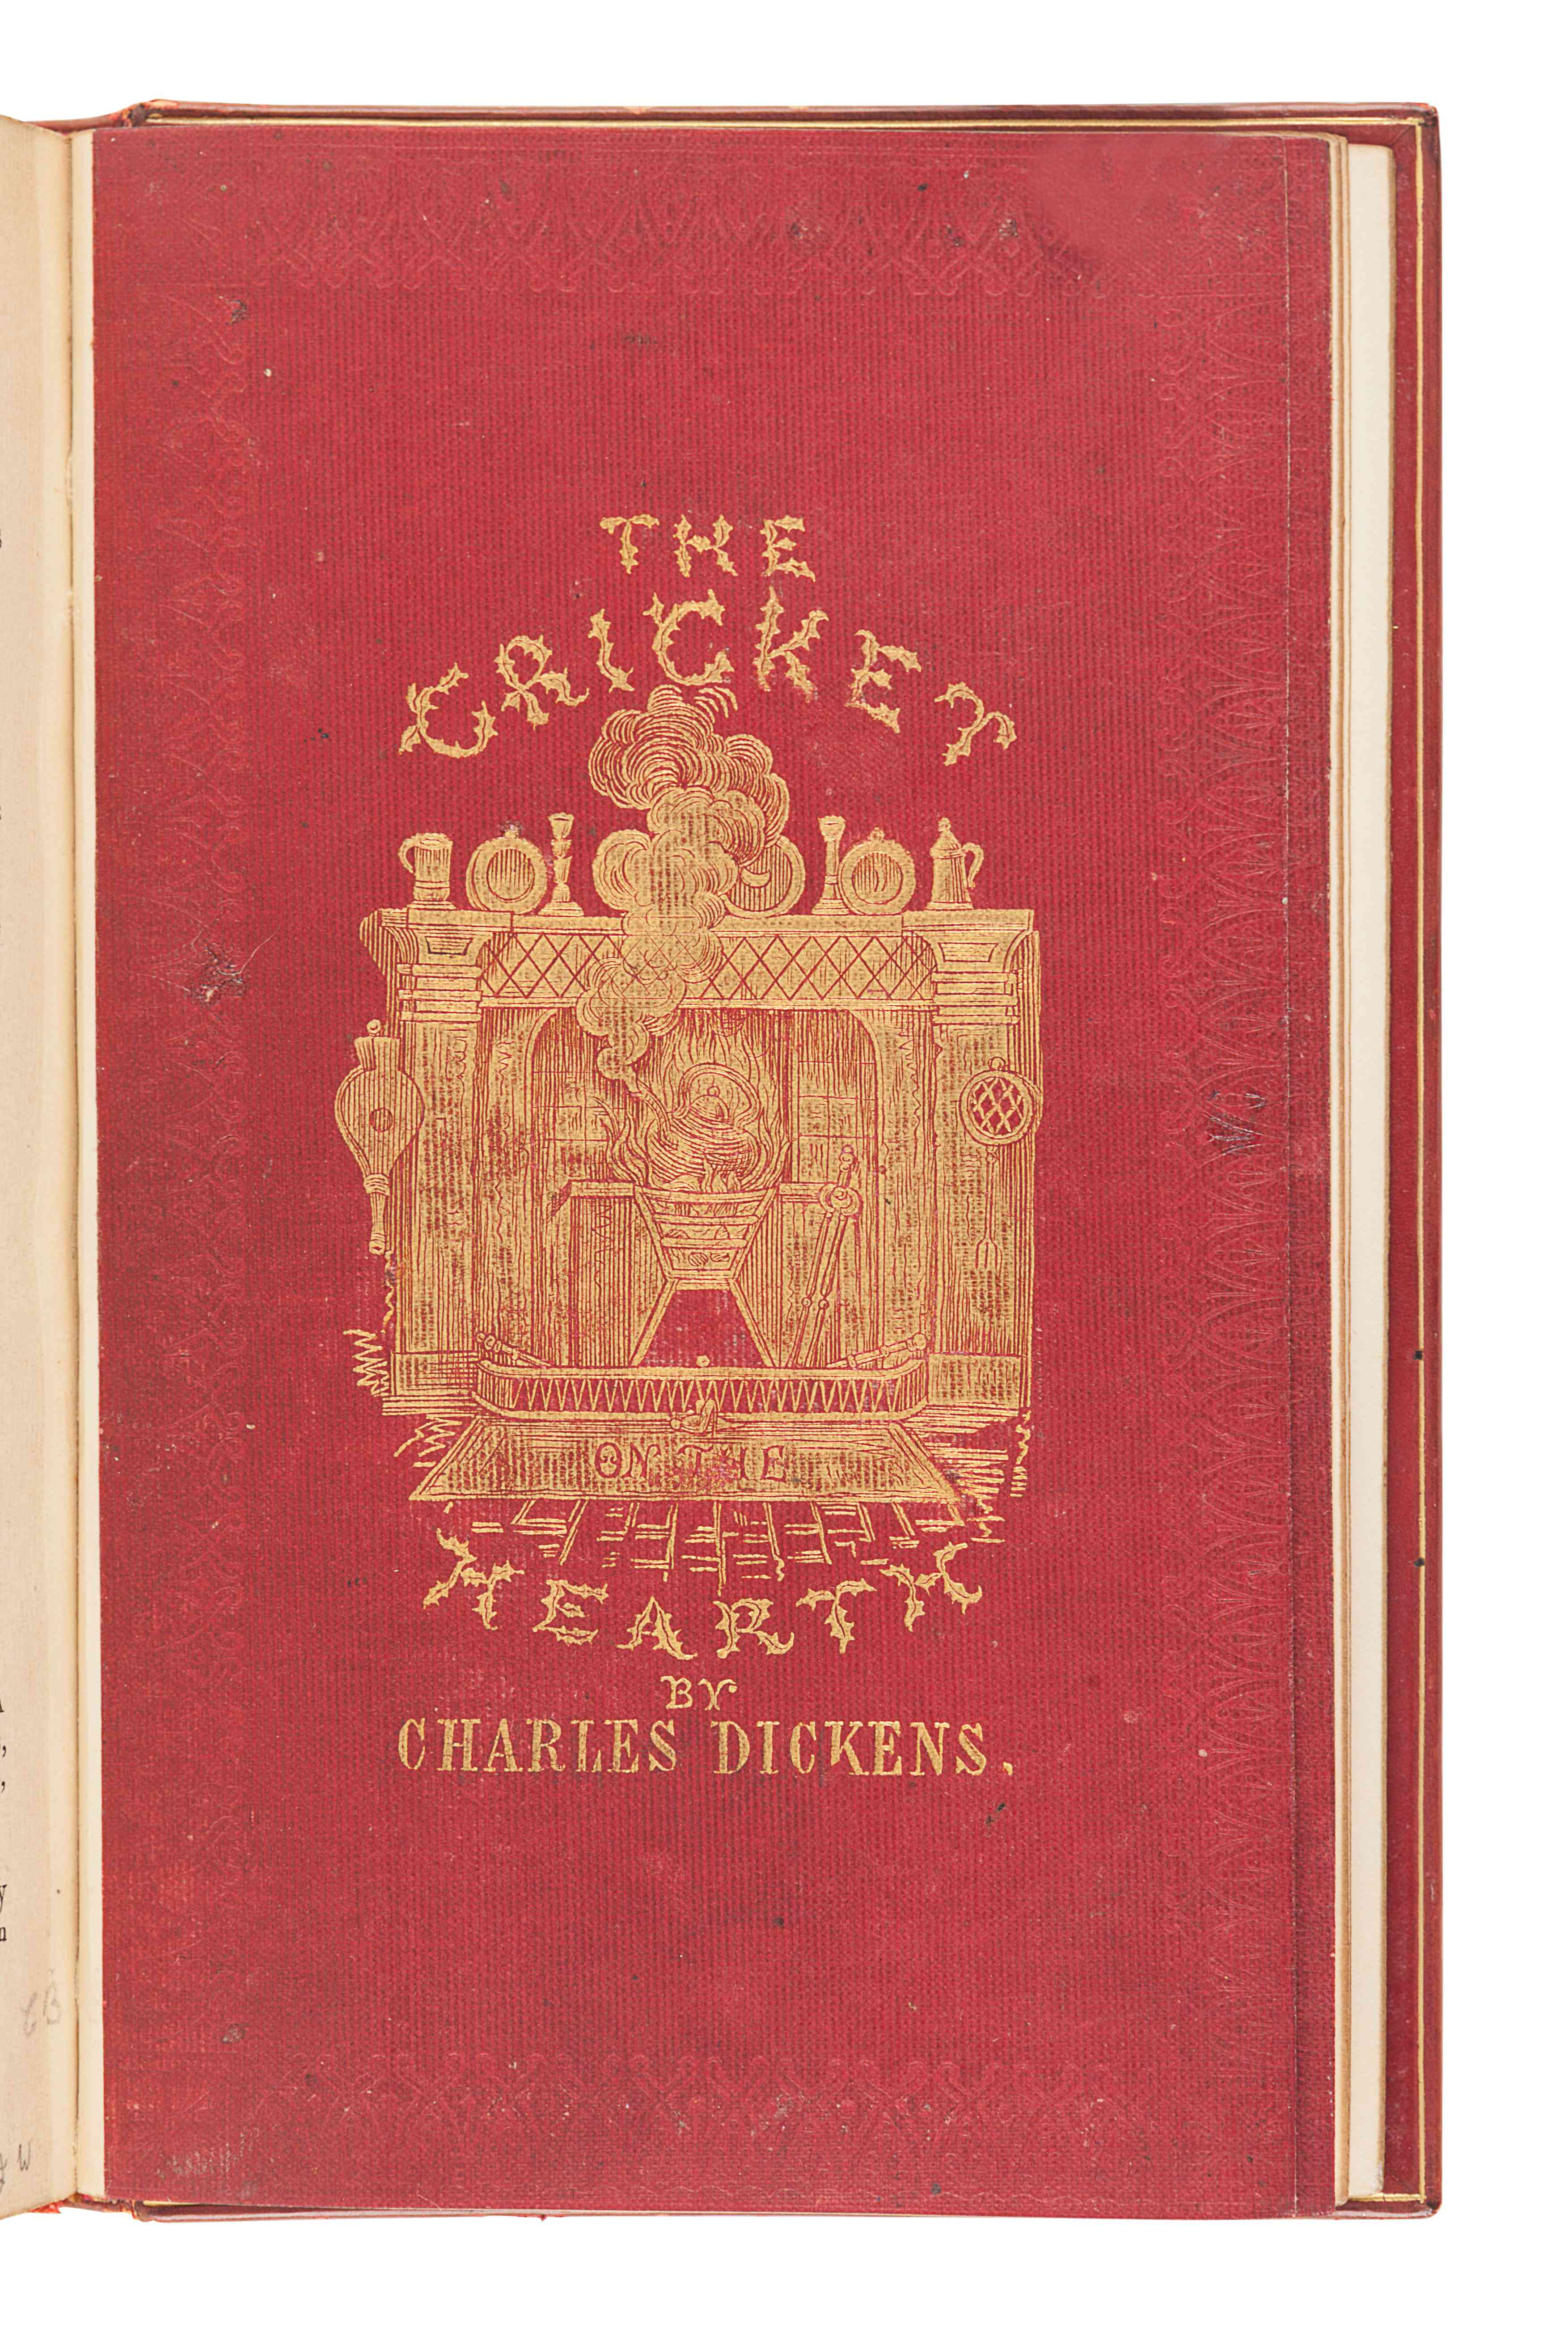 DICKENS, Charles (1812-1870). The Cricket on the Hearth. A Fairy Tale of Home. London: Bradbury & Ev - Image 2 of 3